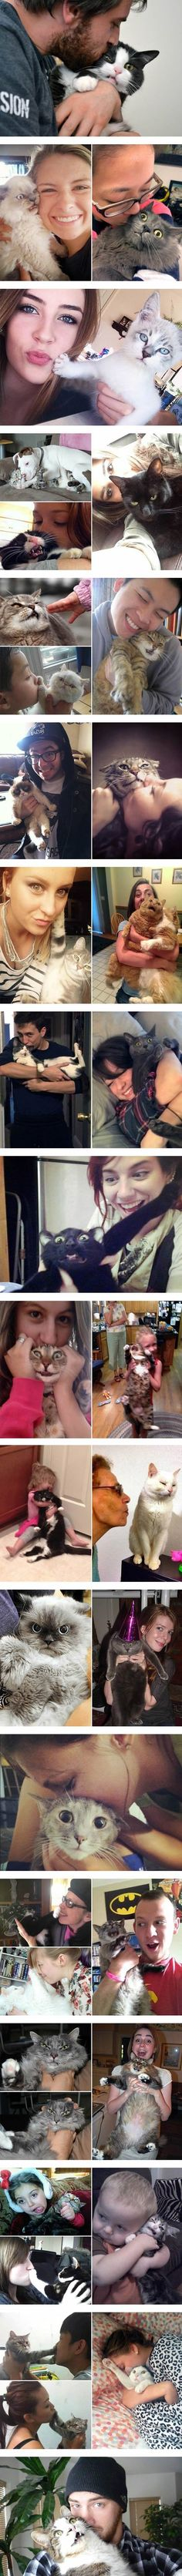 Cats that don't like cuddling